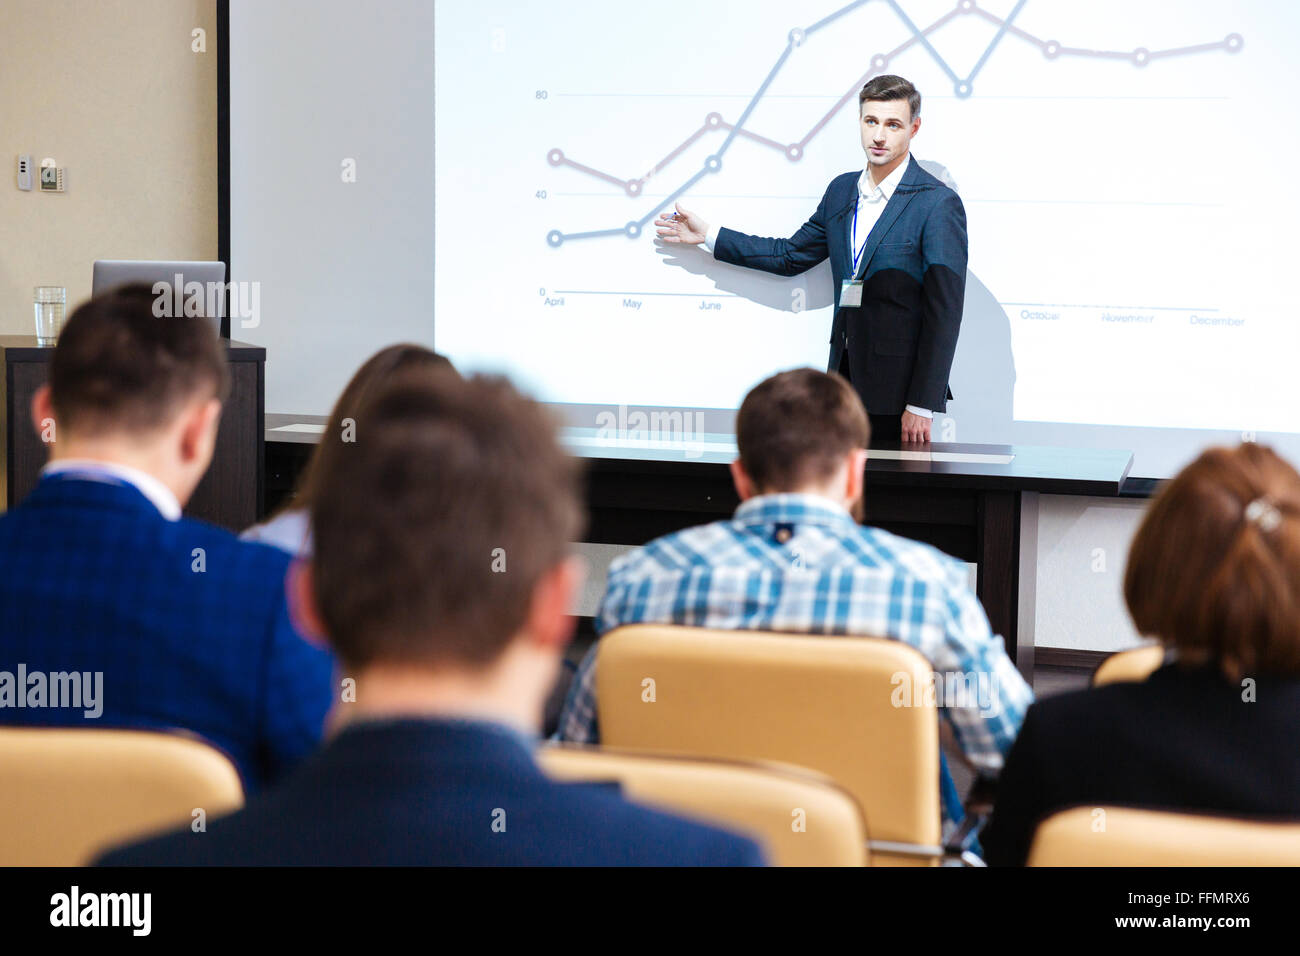 Inelligent speaker standing and lecturing at business conference in boardroom - Stock Image